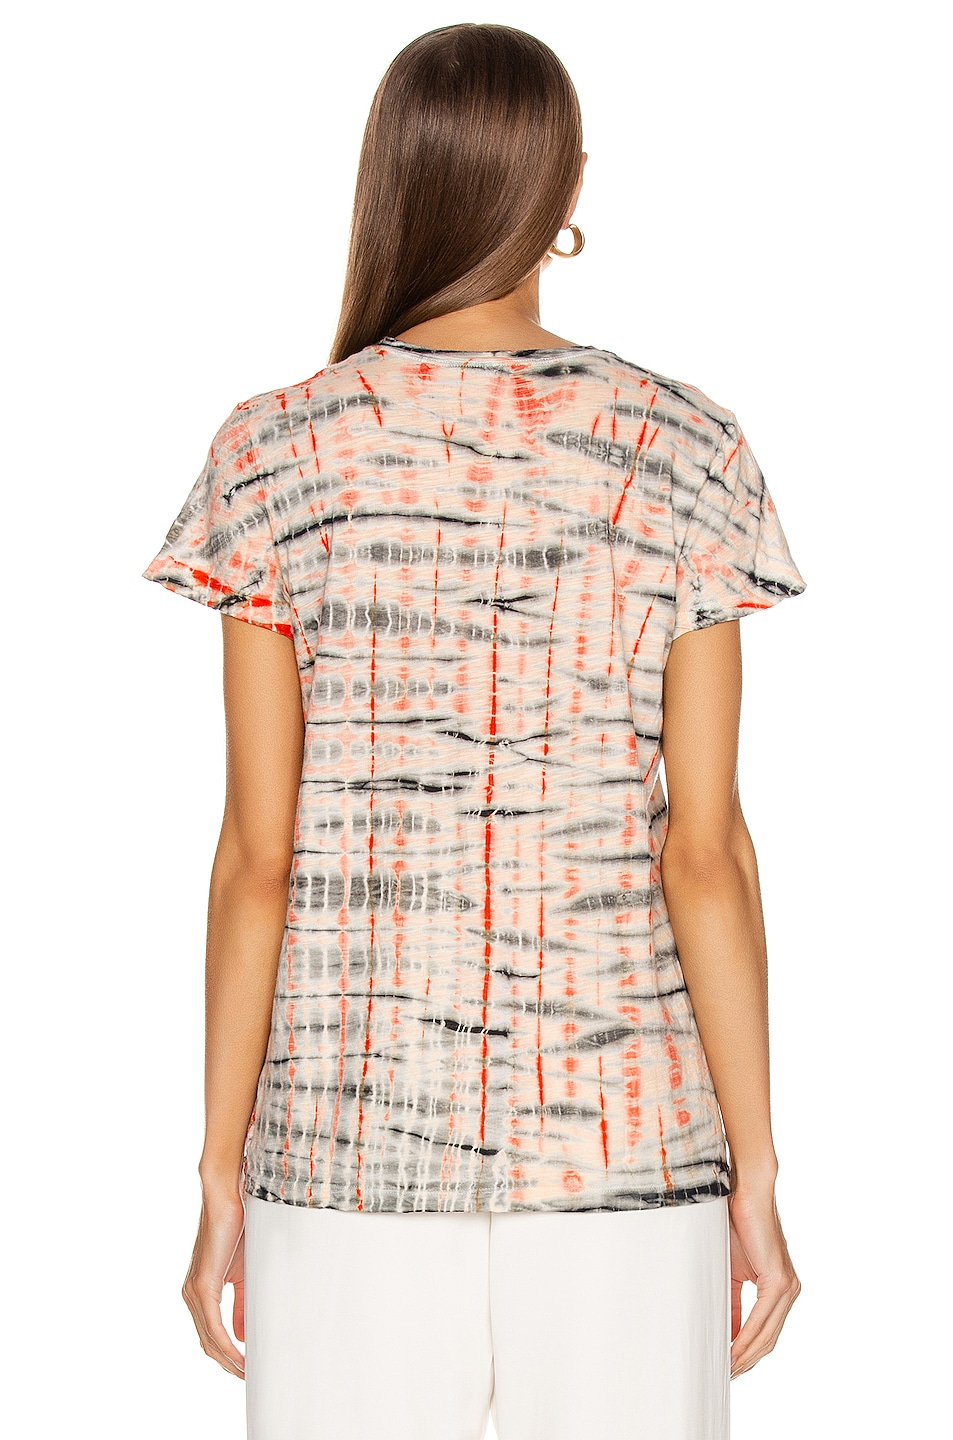 Image 3 of Proenza Schouler Tie Dye T Shirt in Peach & Orange